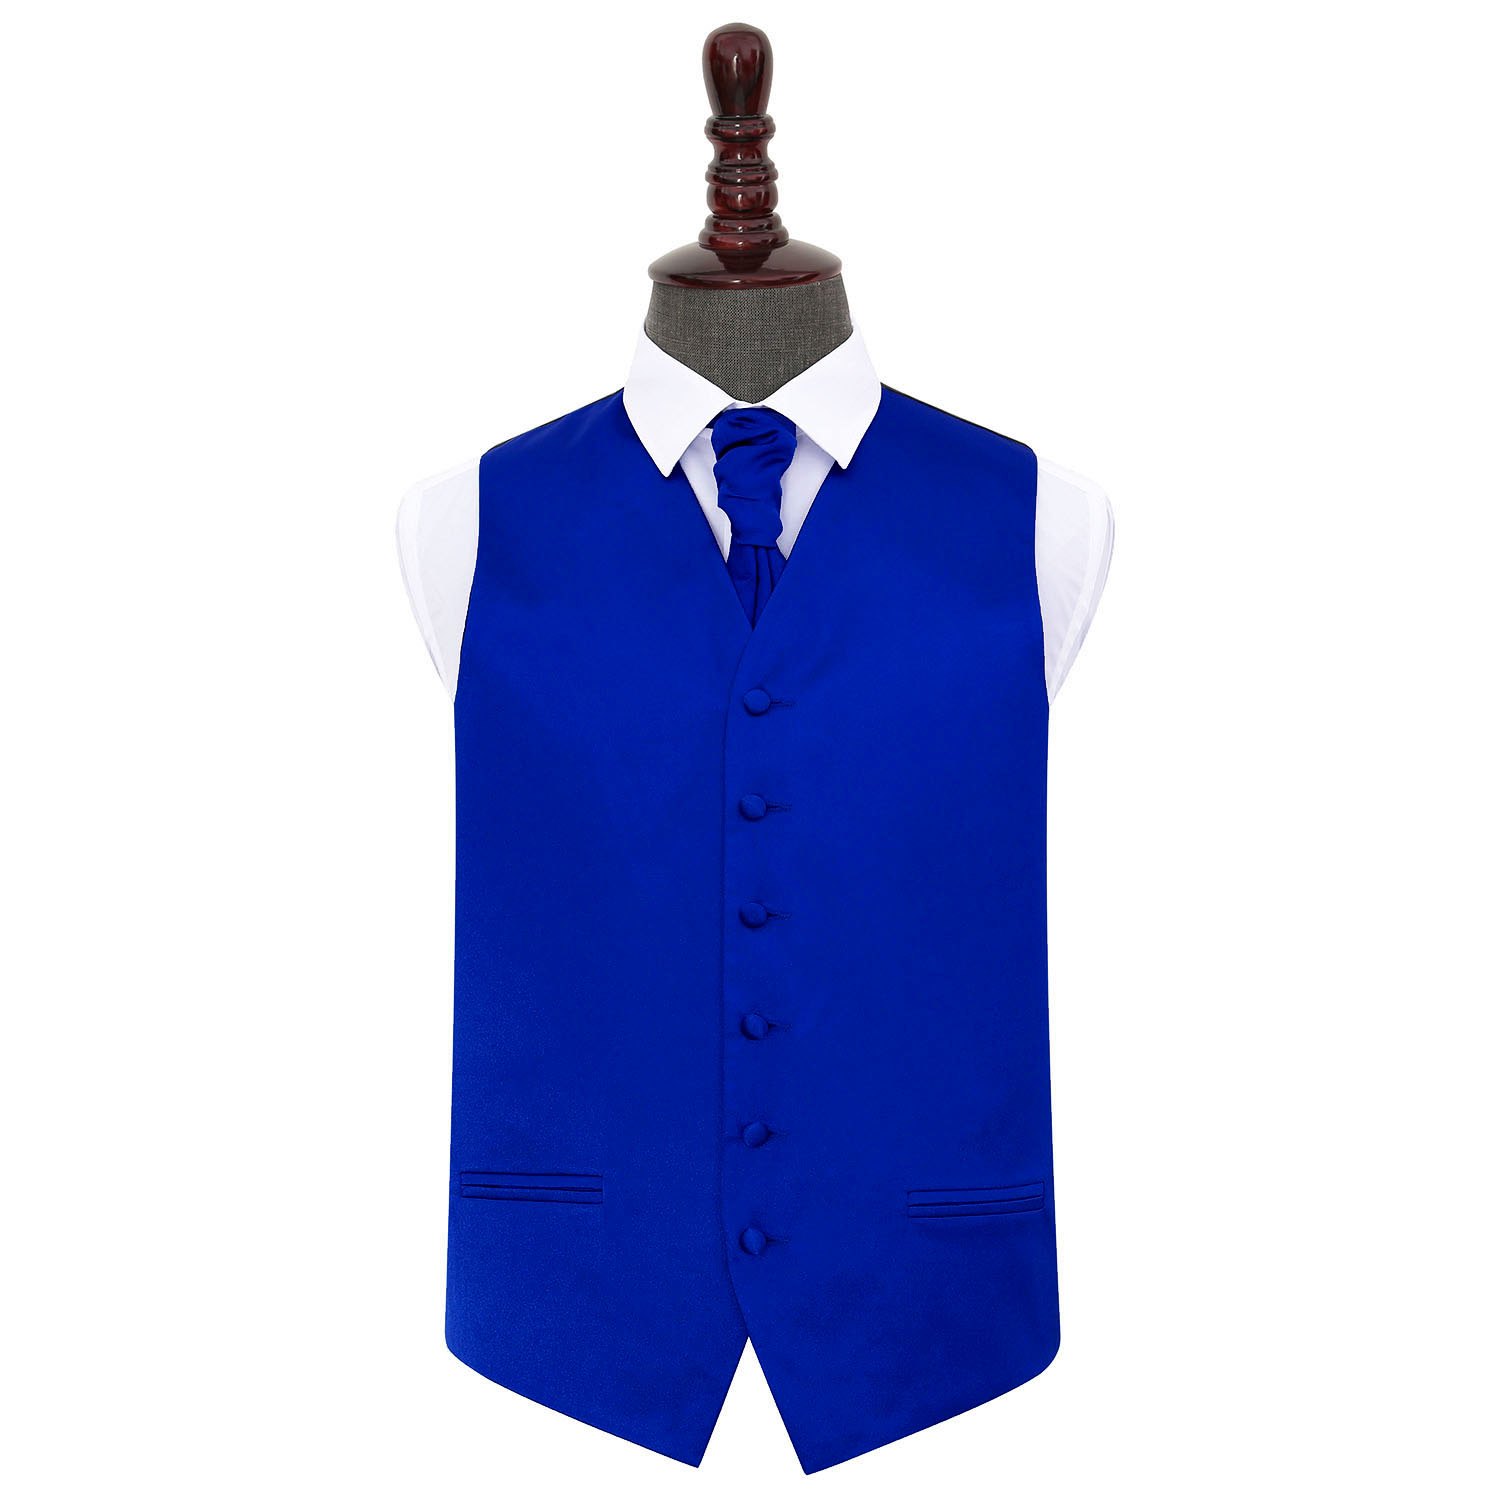 Waistcoats Made from % wool, these suit waistcoats are both stylish and comfortable with rich details like welt side pockets, colourful silks and linings. Pop on one of our beautifully woven waistcoats and enjoy the full impact of a three piece suit.